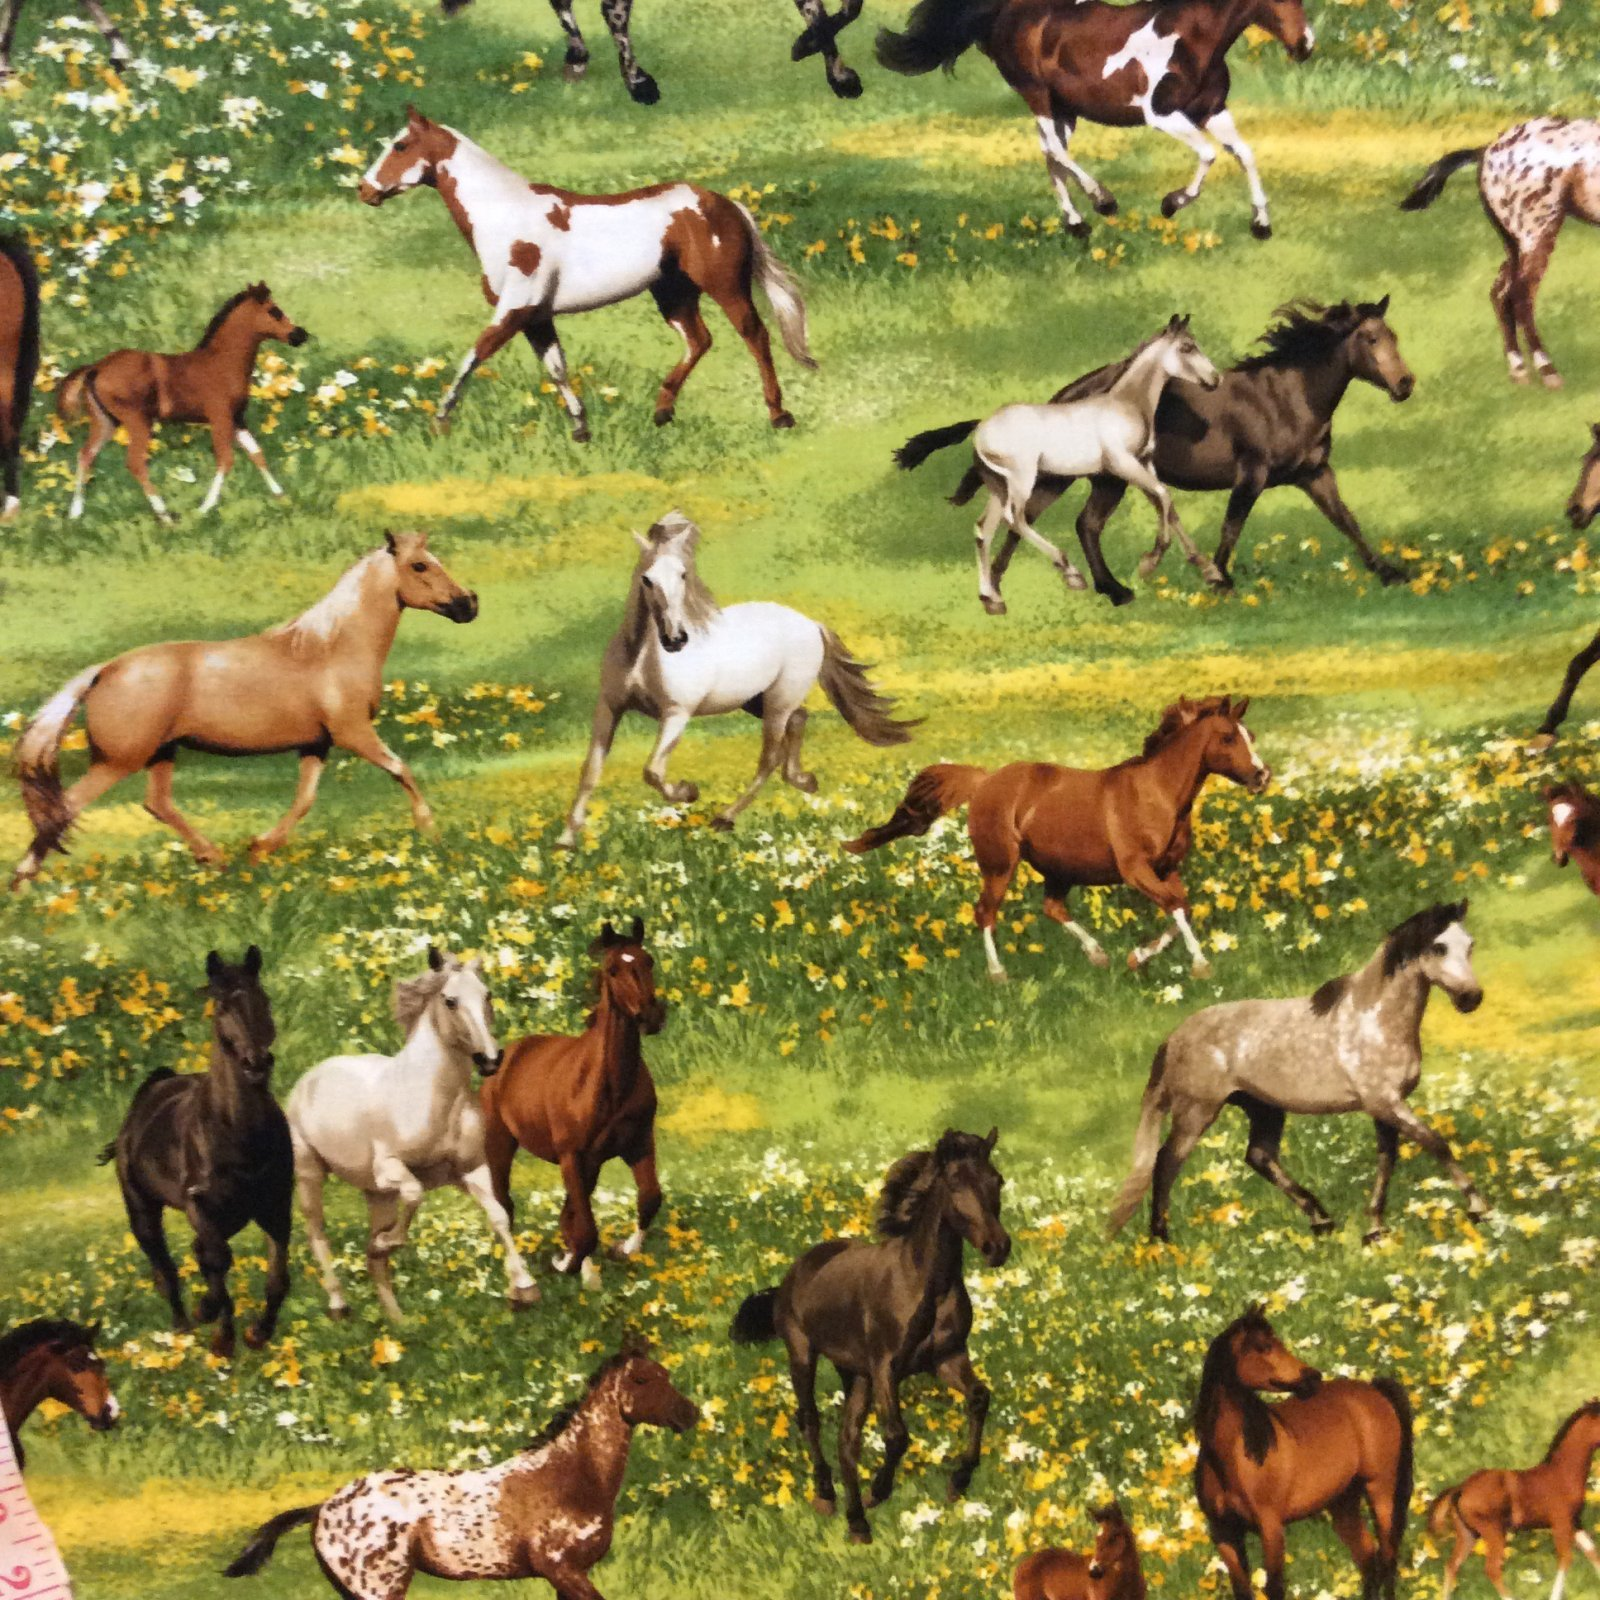 Horses Galloping Equestrian Palomino Morgan Walker Appaloosa Cotton Quilt Fabric MD279